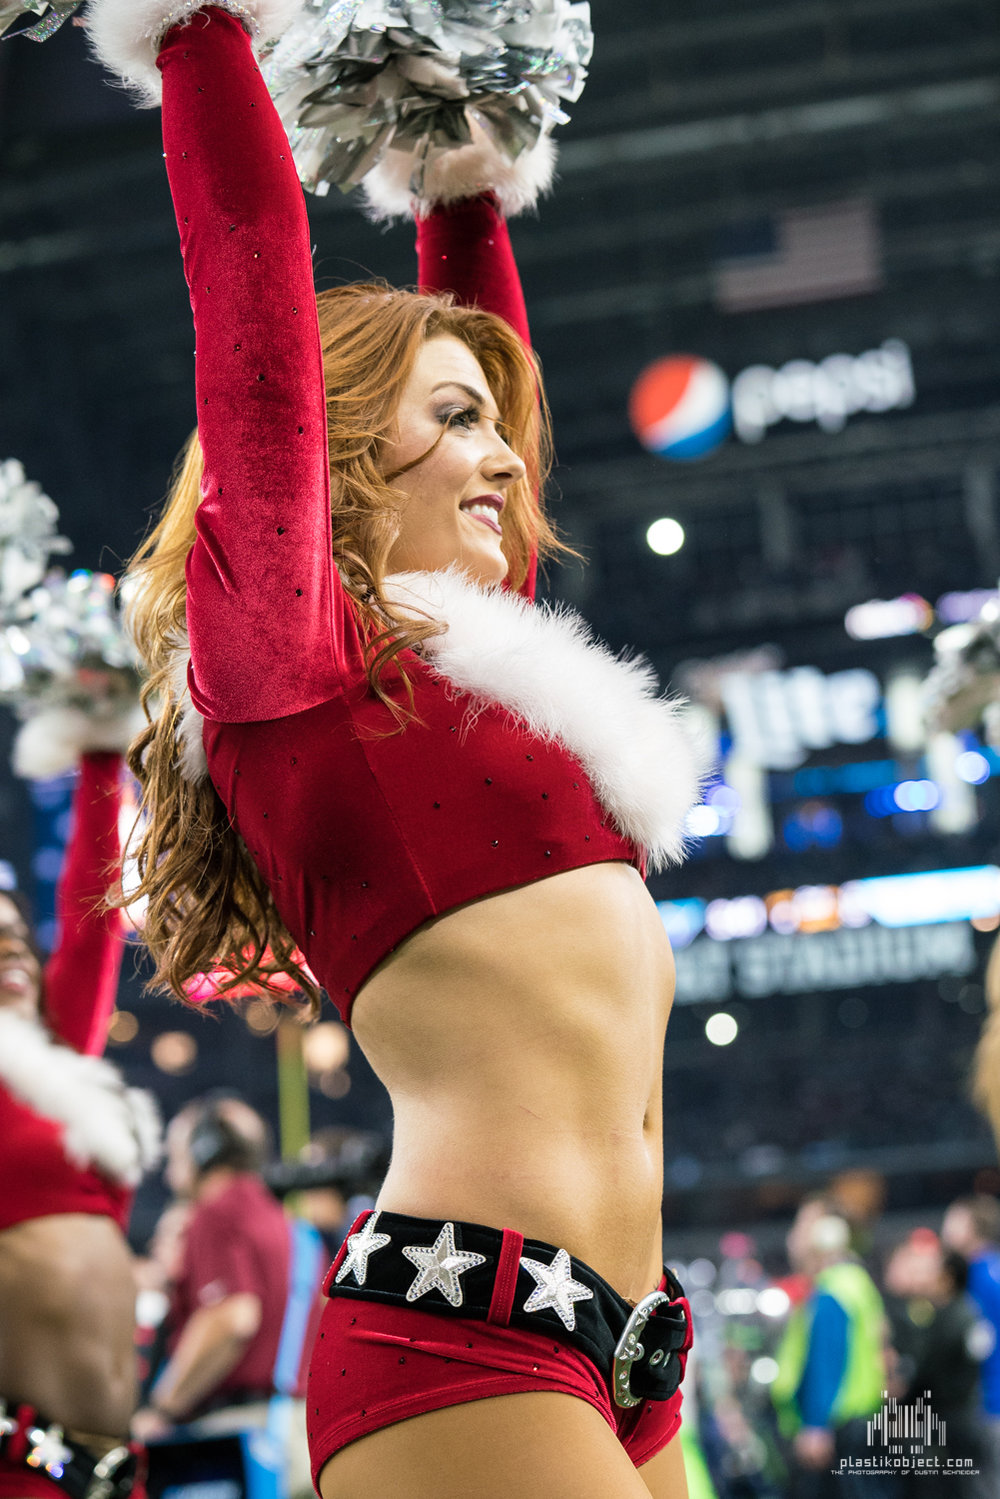 20171224_DalvsSea_cheer_Stephanie-3.jpg